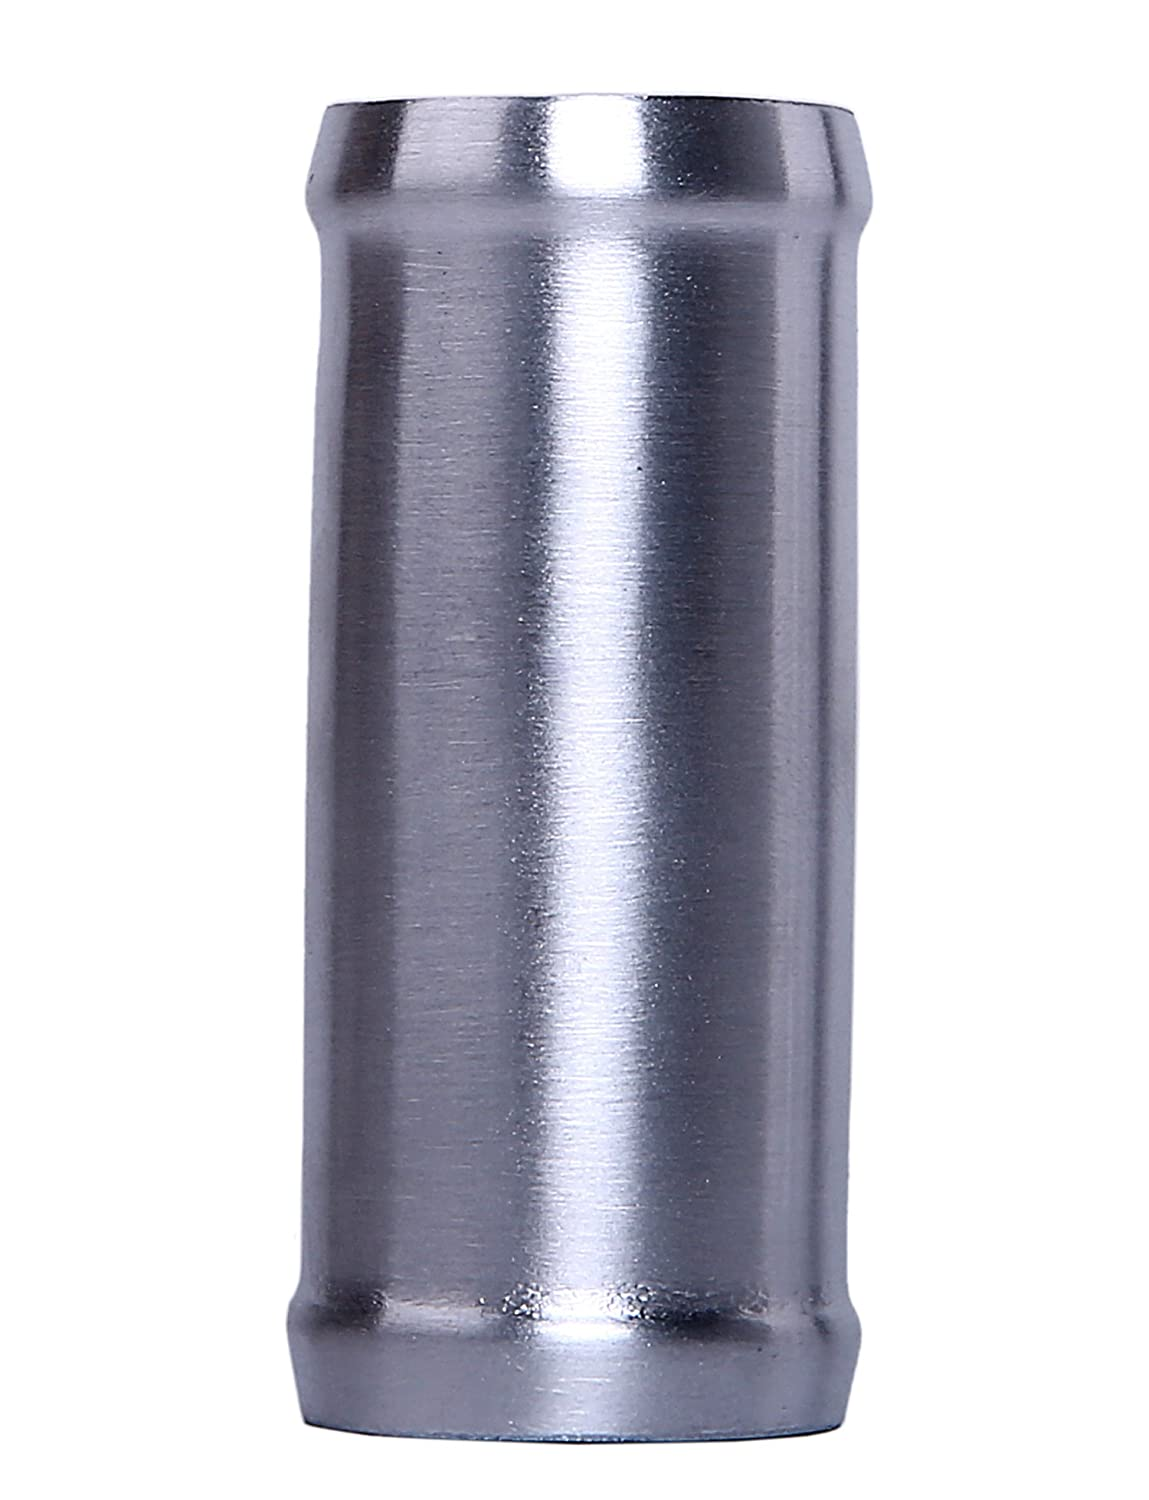 3 inch Hiwowsport Alloy Aluminum Hose Adapter 76mm Length Joiner Pipe Connector 76mm